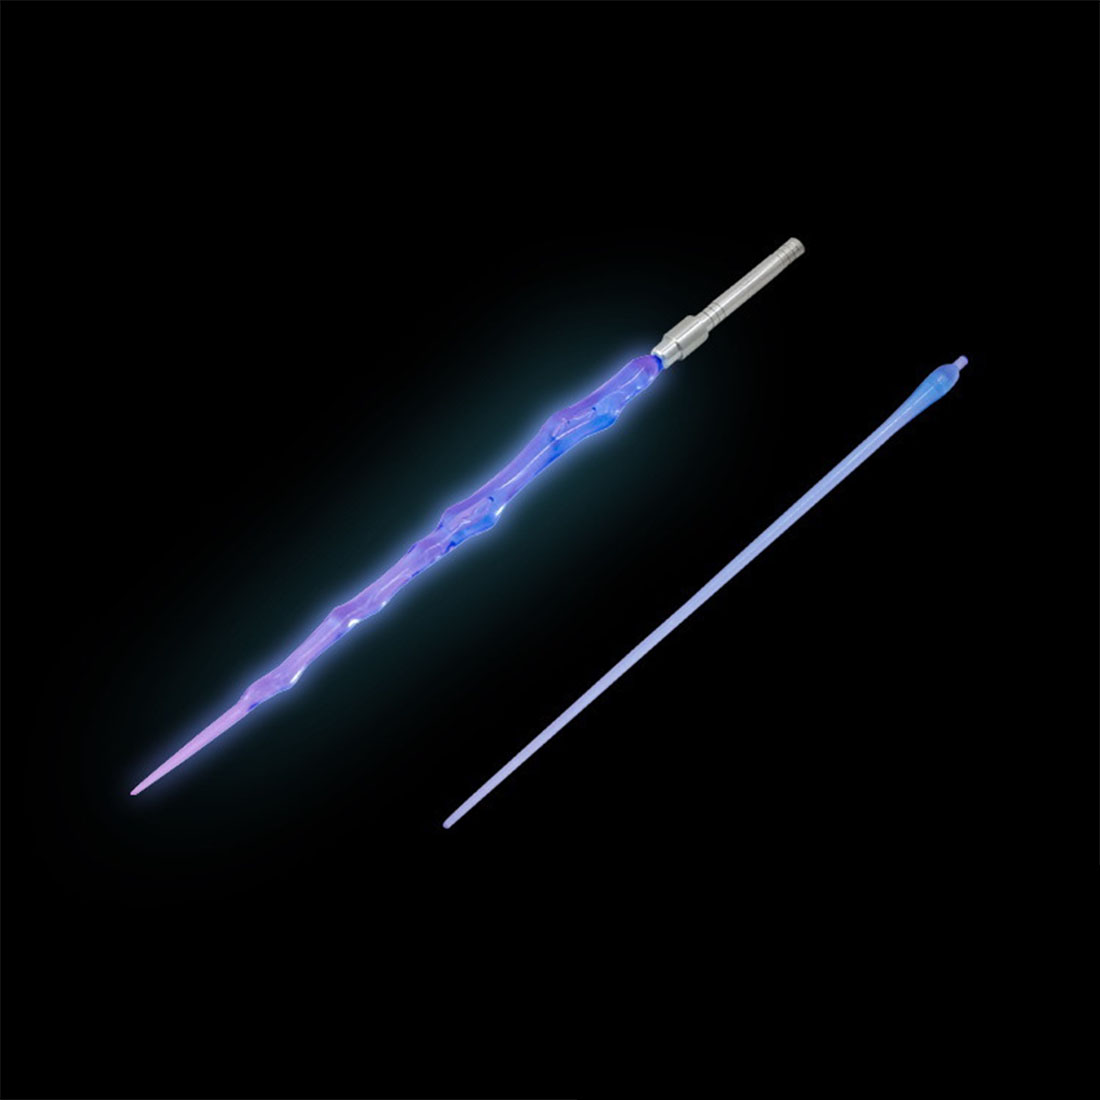 Lightsaber Luminescent Laser Weapon For 1/100 MG Gundam Robot Action Figure Model - Purple White Pink Green Blue